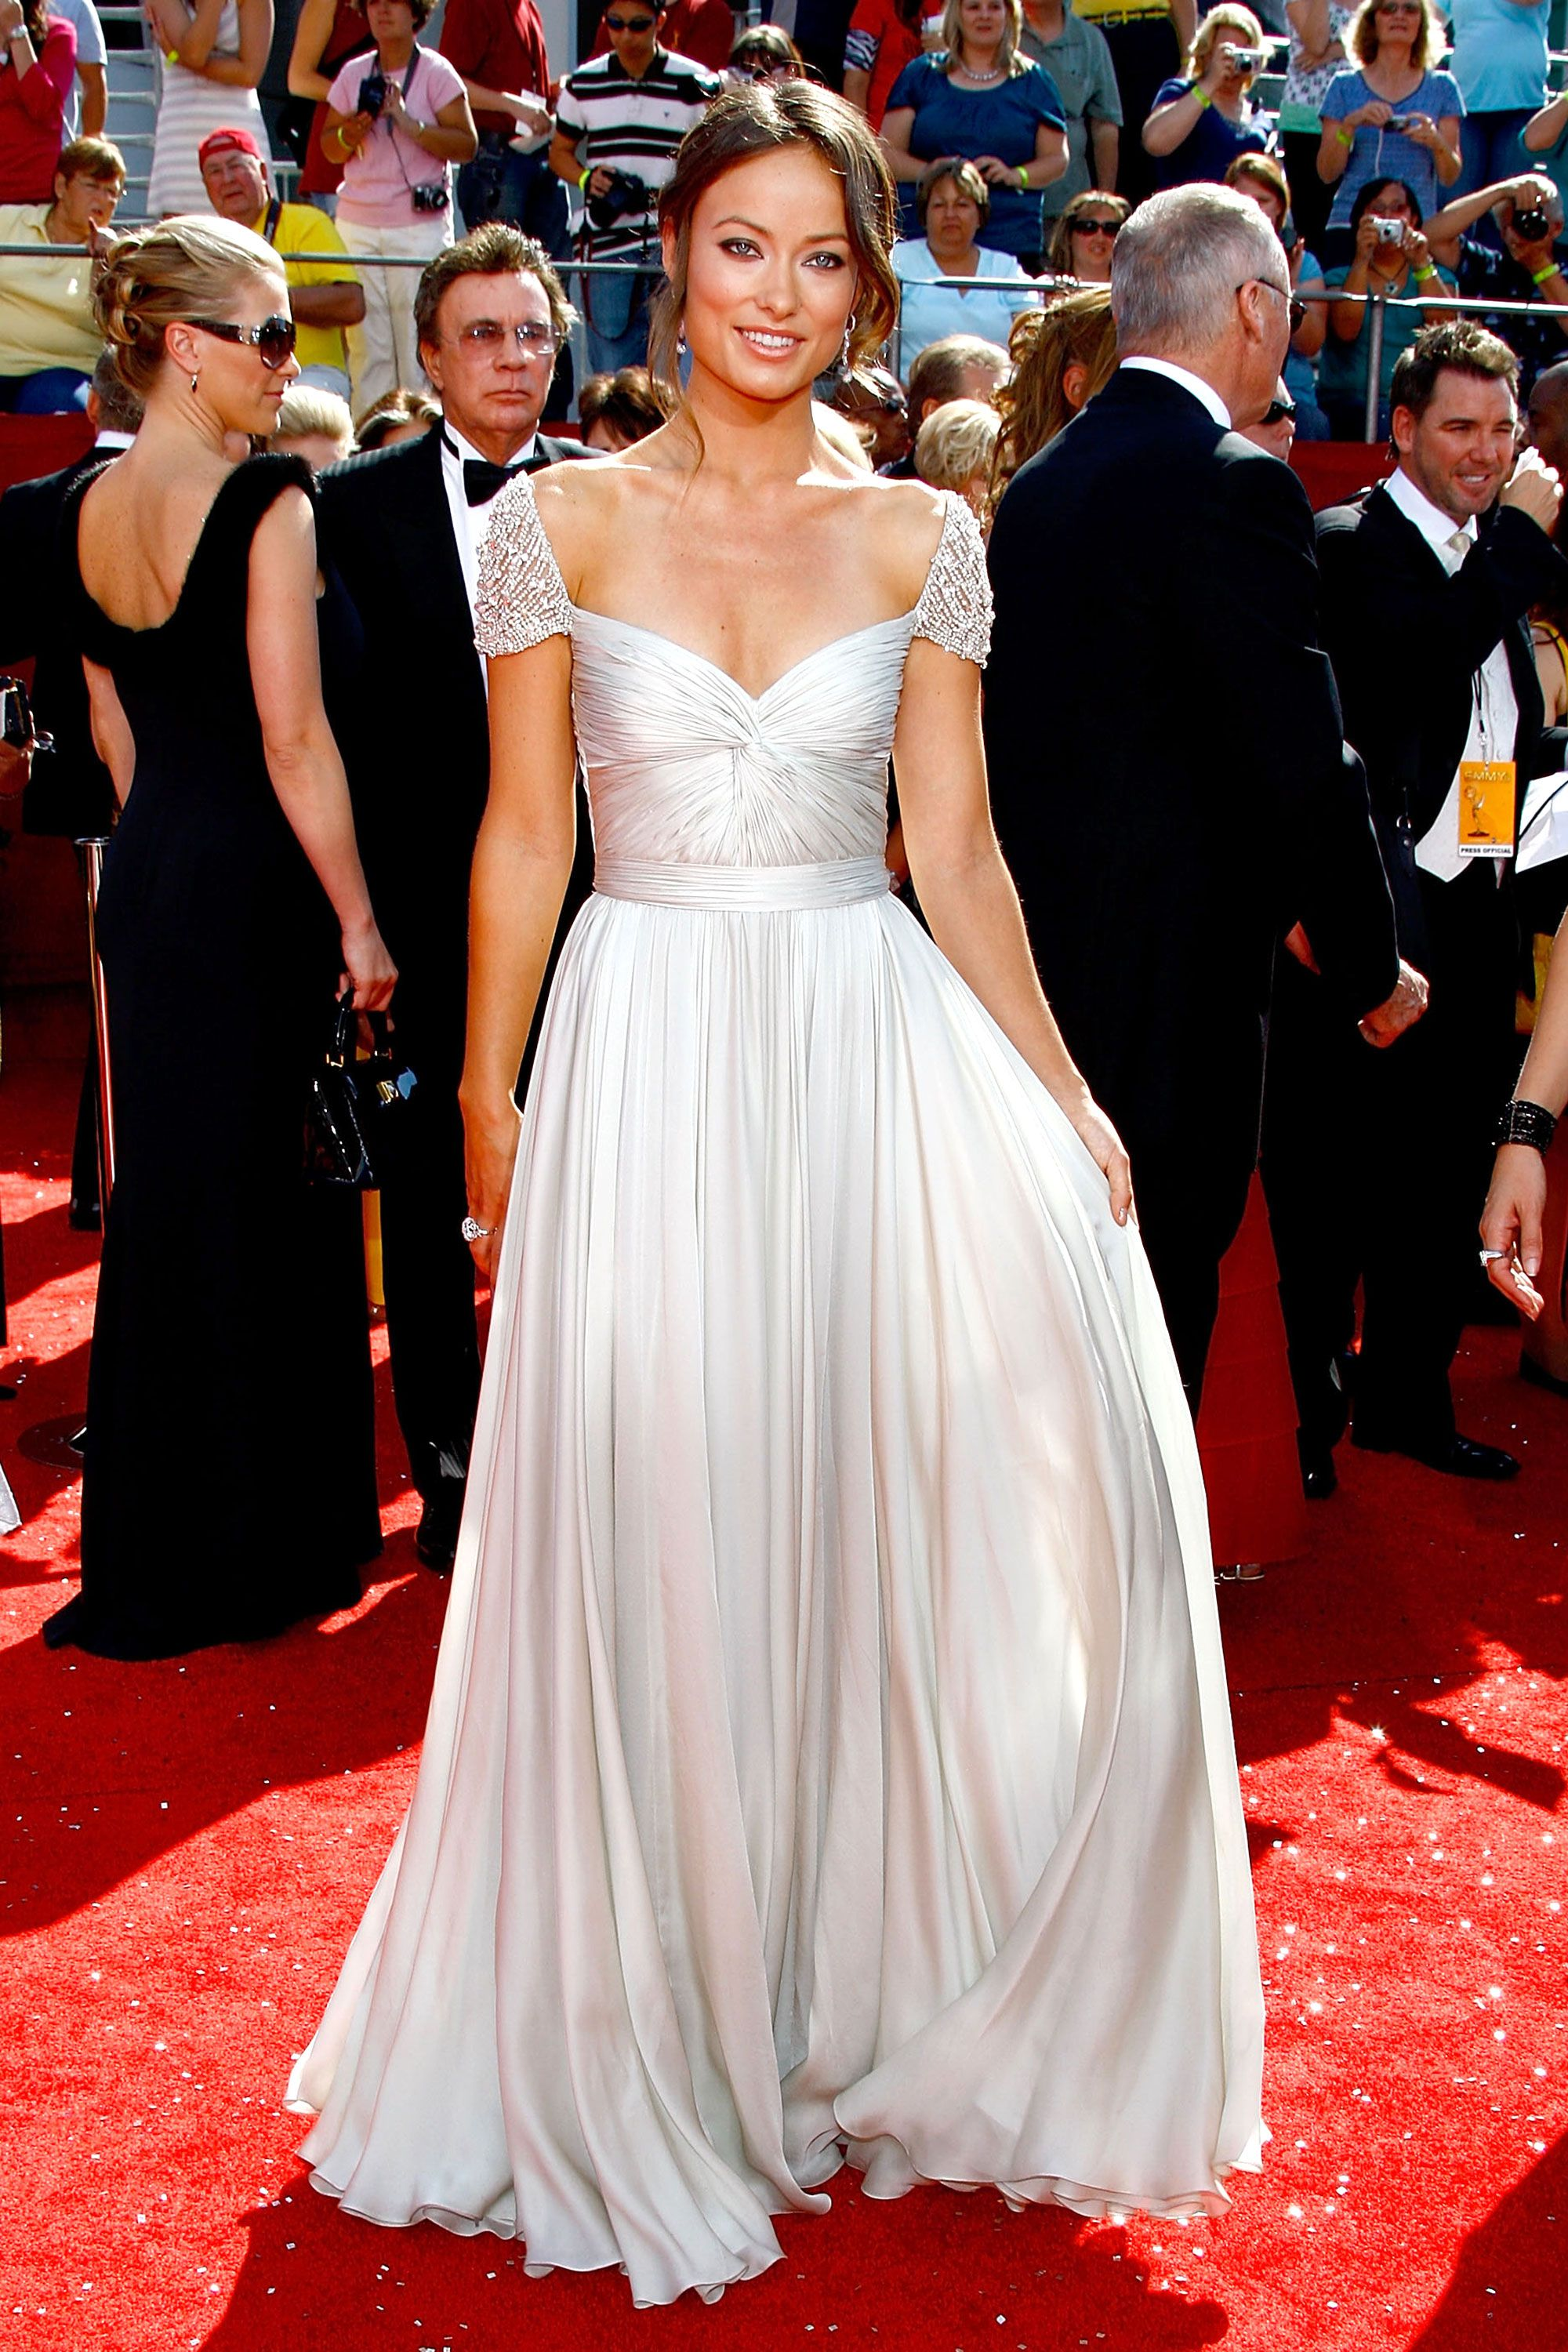 The best red carpet gowns gossip girls olivia wilde and